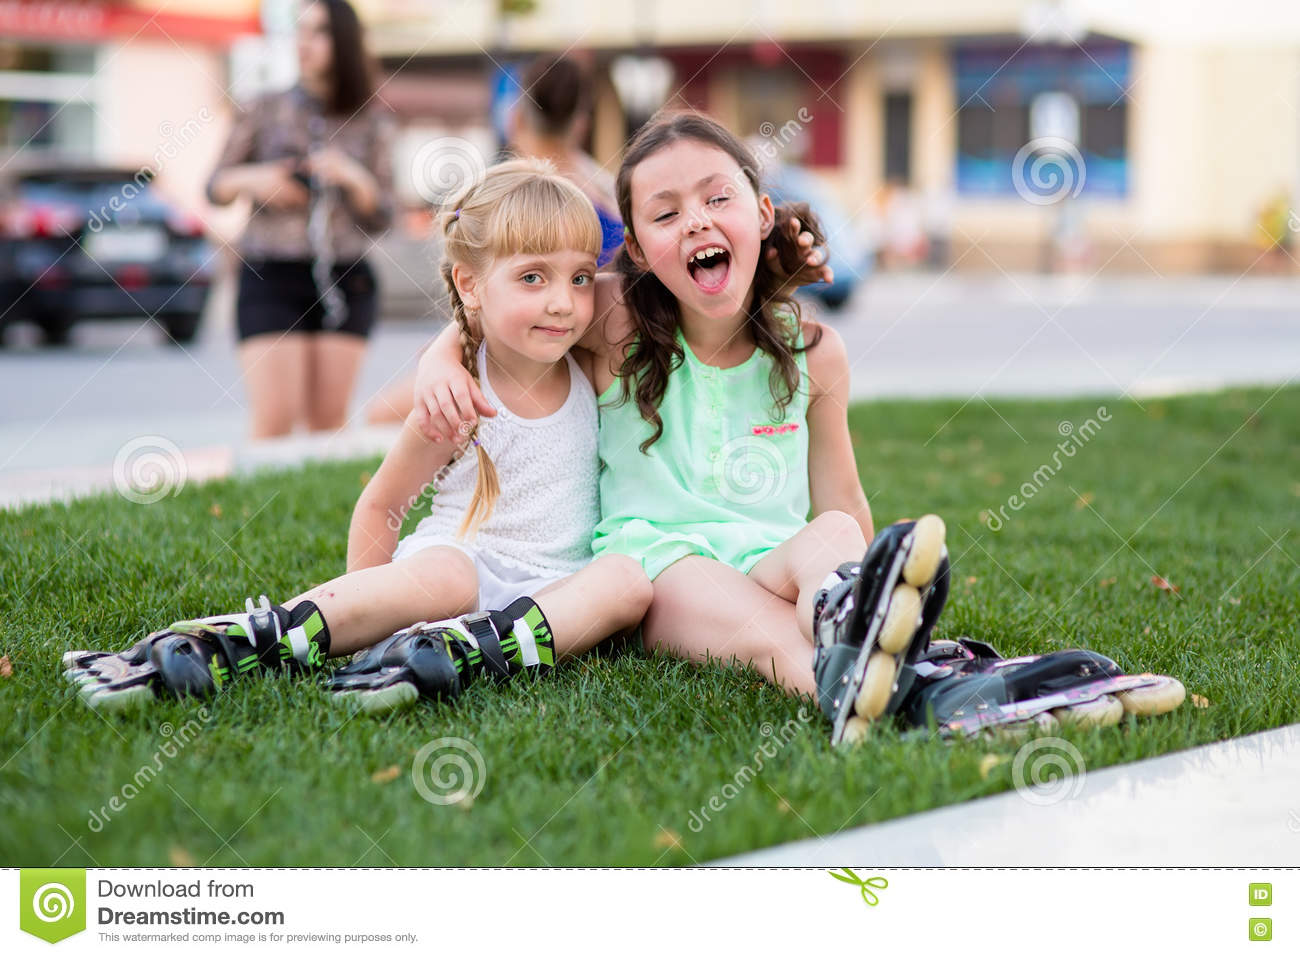 Roller skates for grass